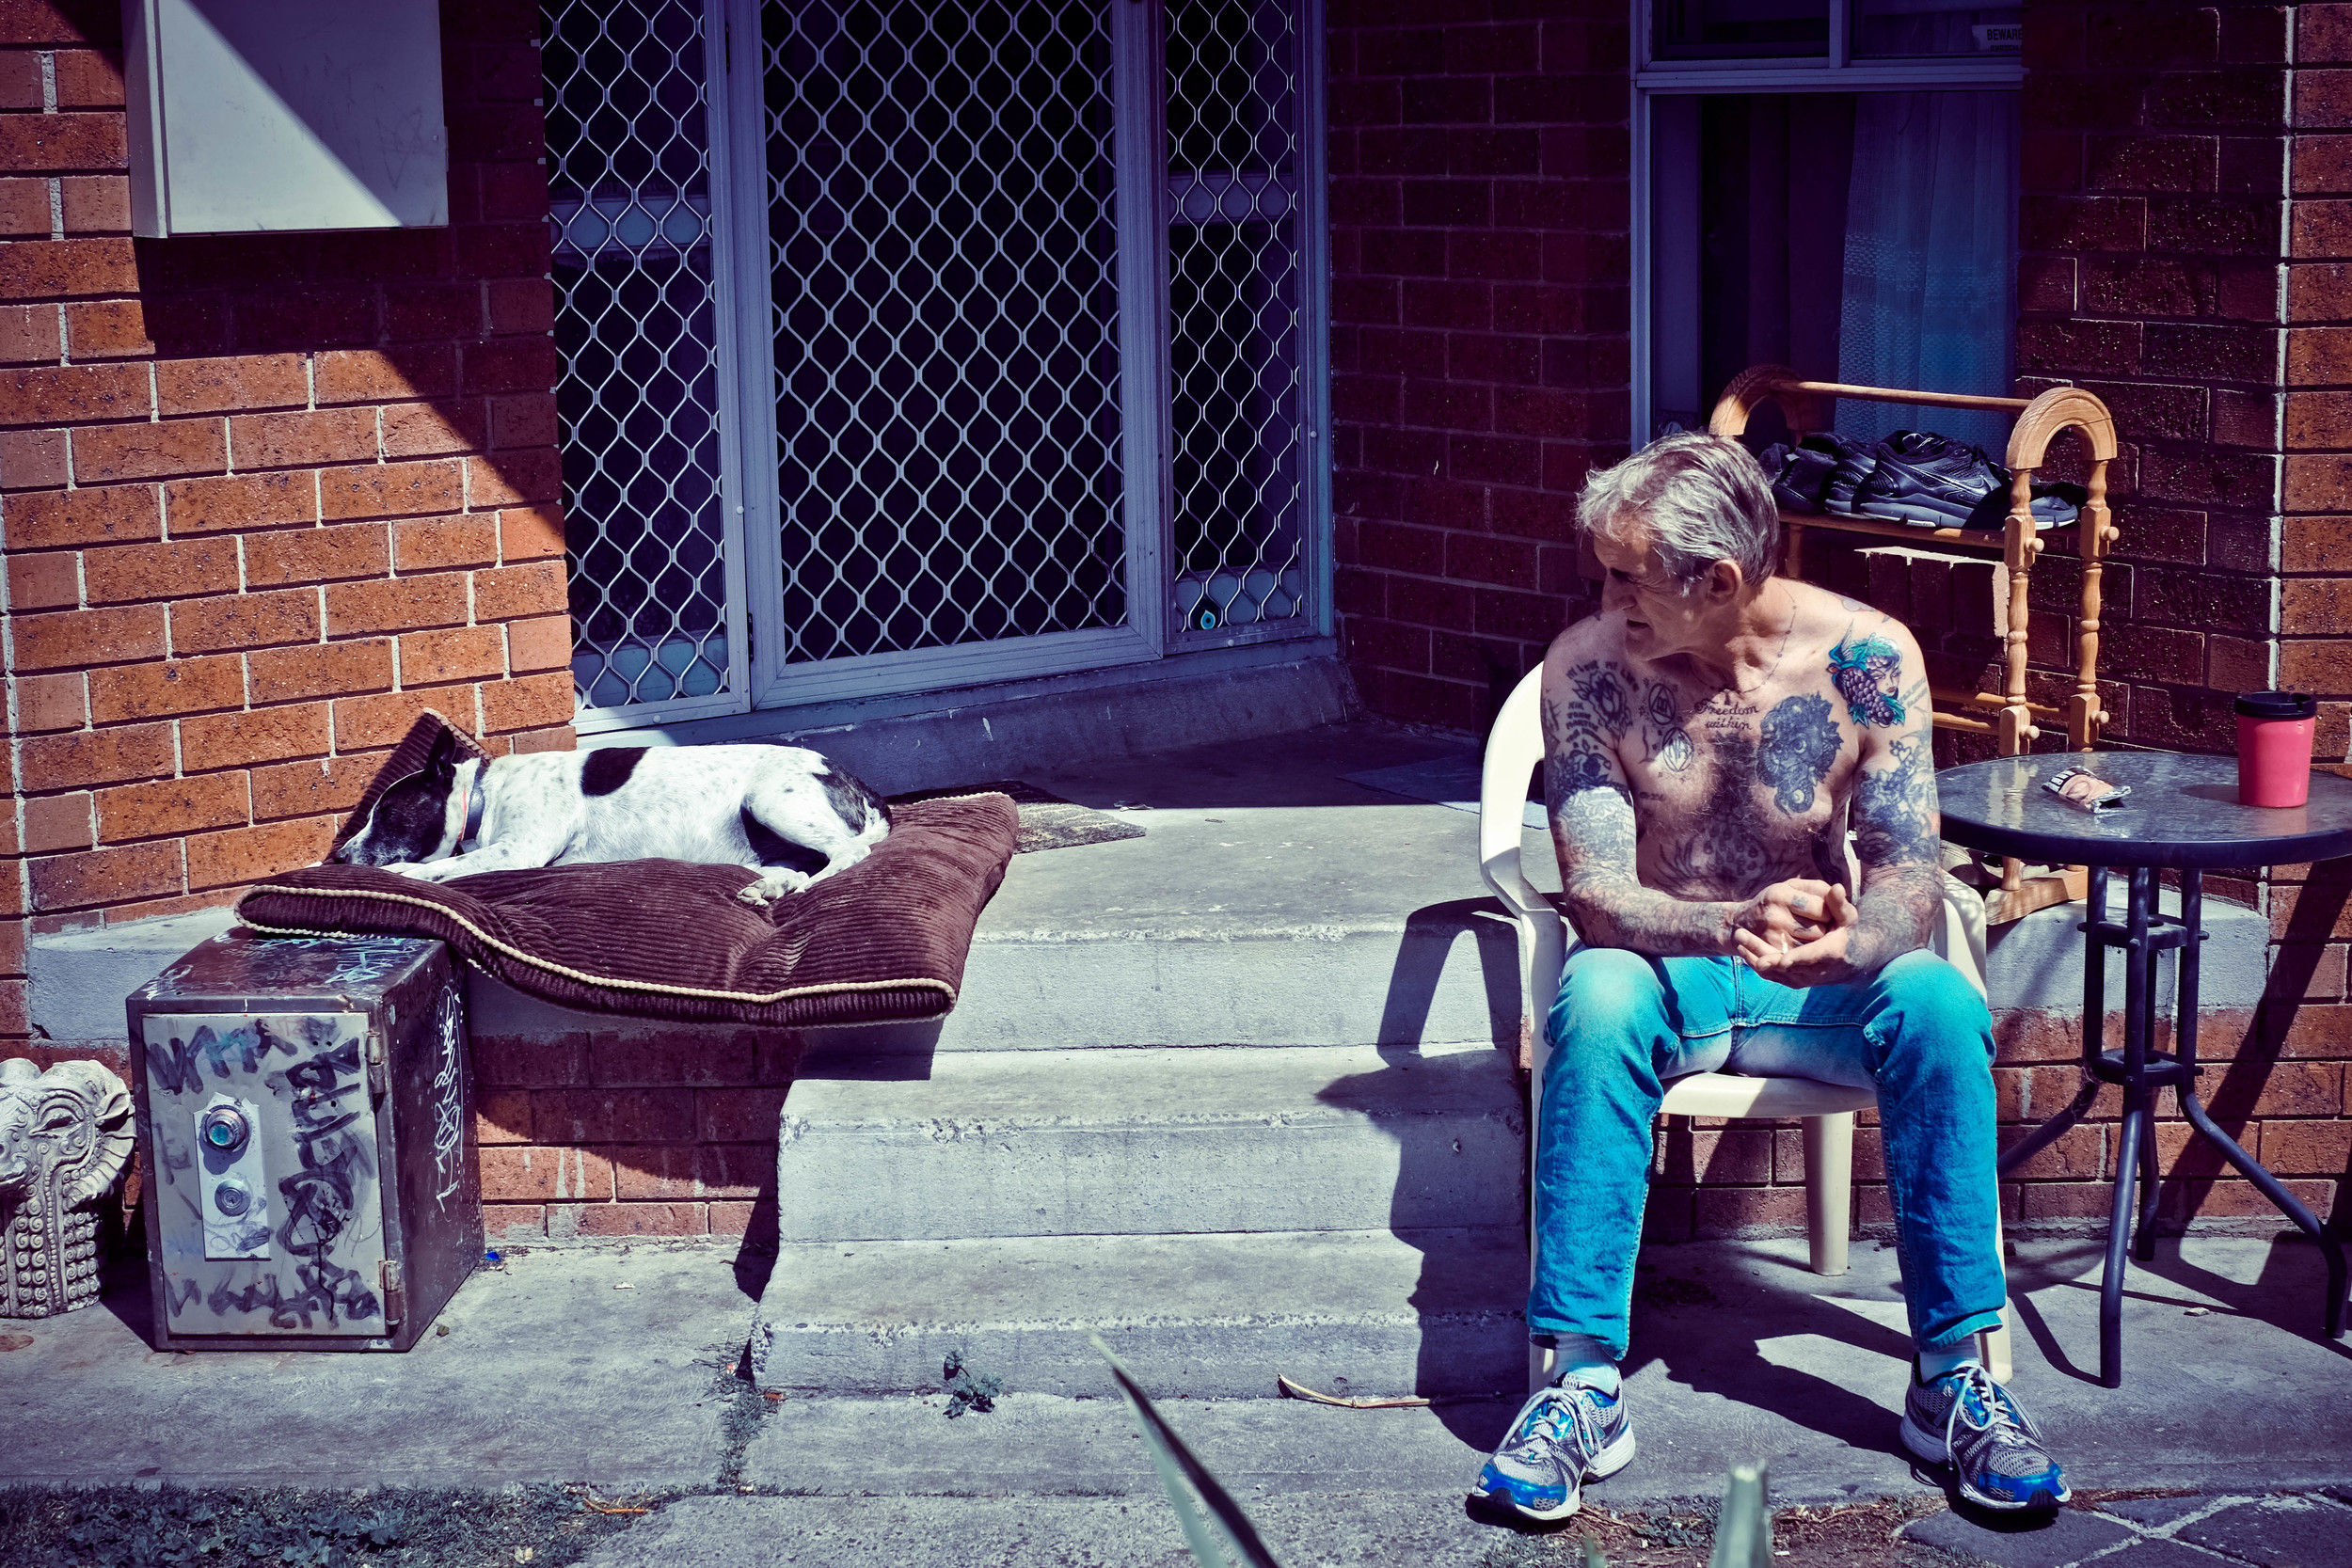 Johnny 'Halves' with his dog, Dylan.